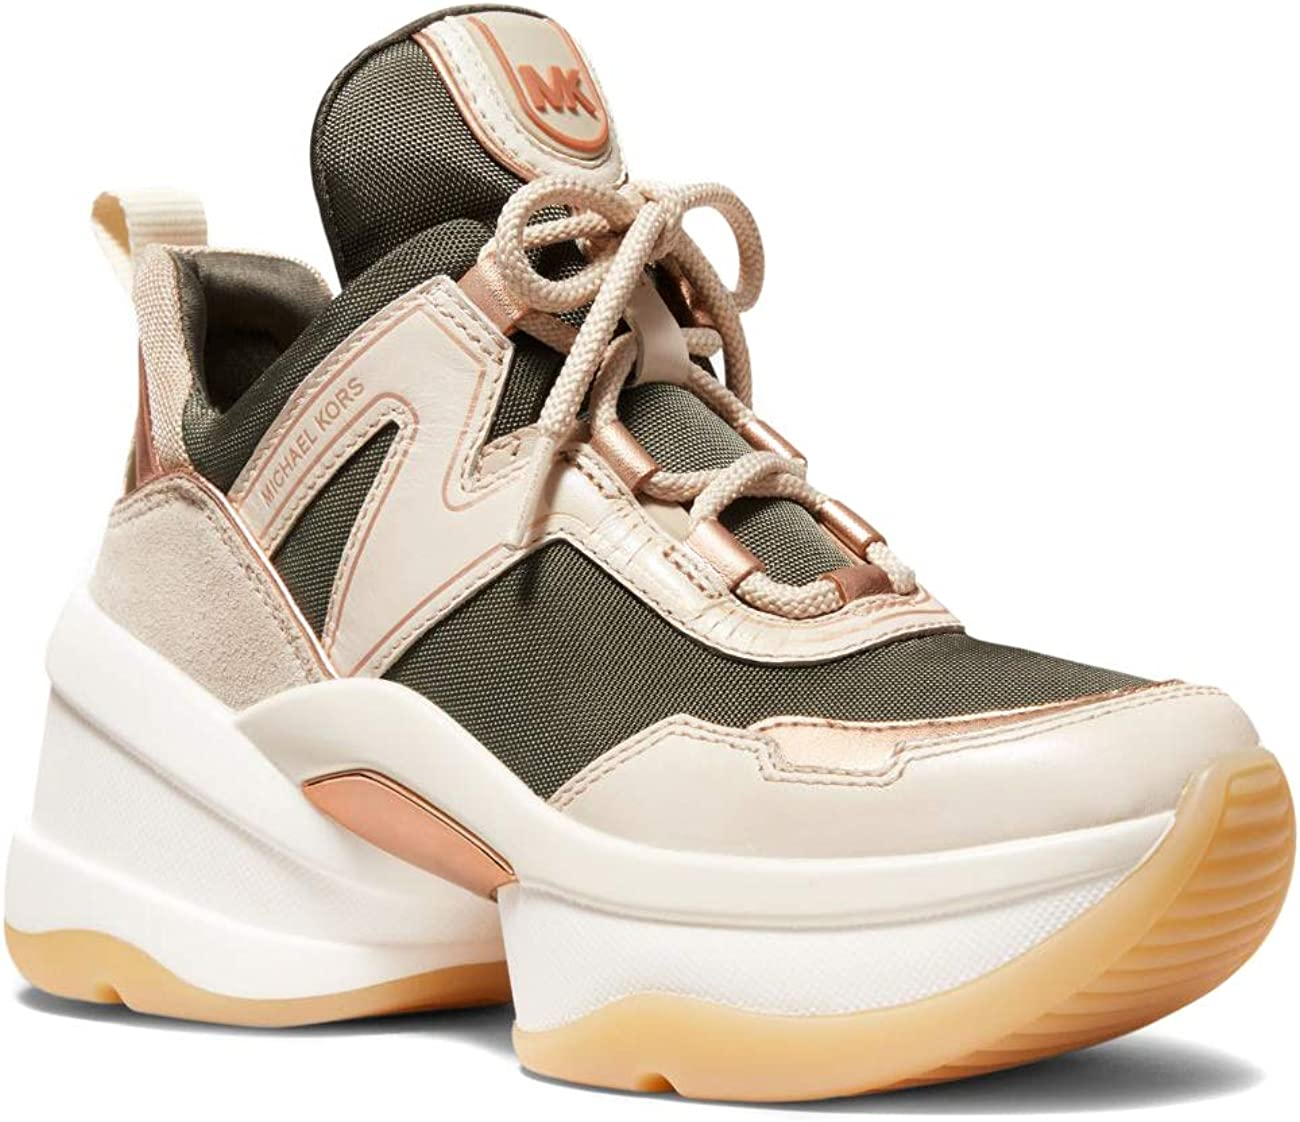 Olympia Trainer Scuba Dad Sneaker Shoes